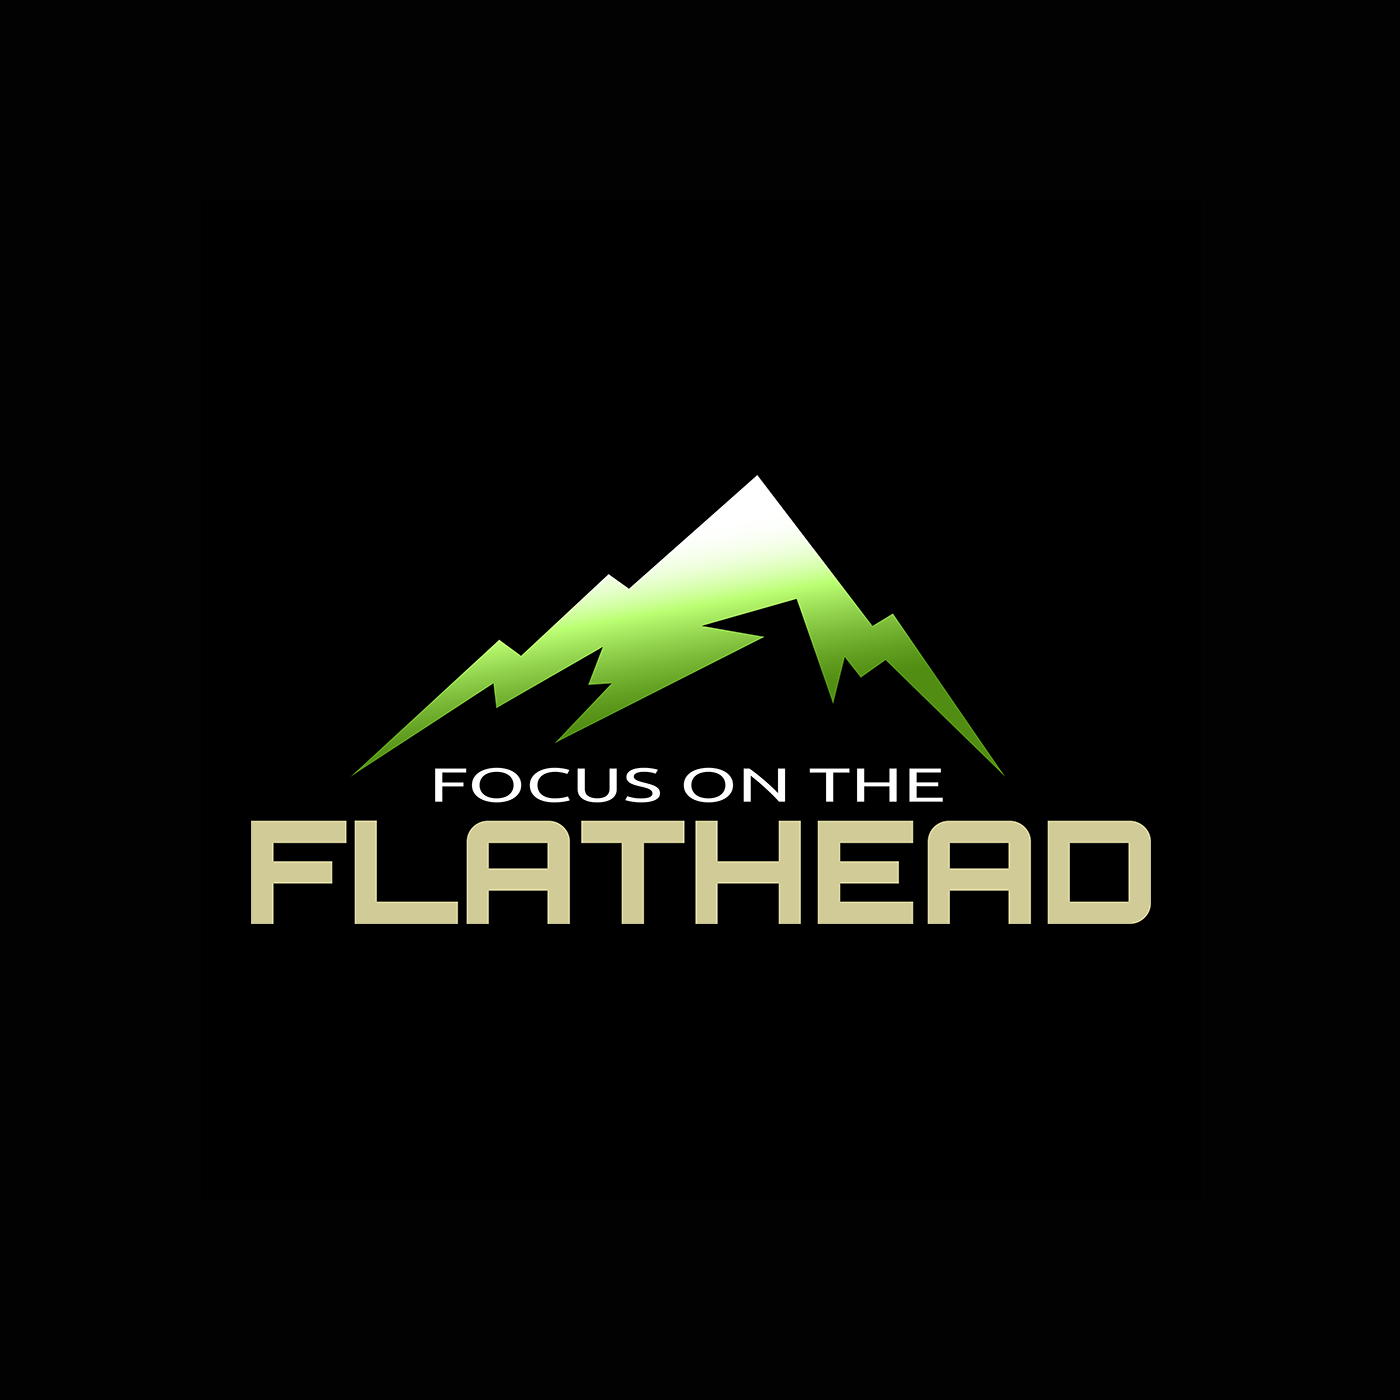 Focus On The Flathead